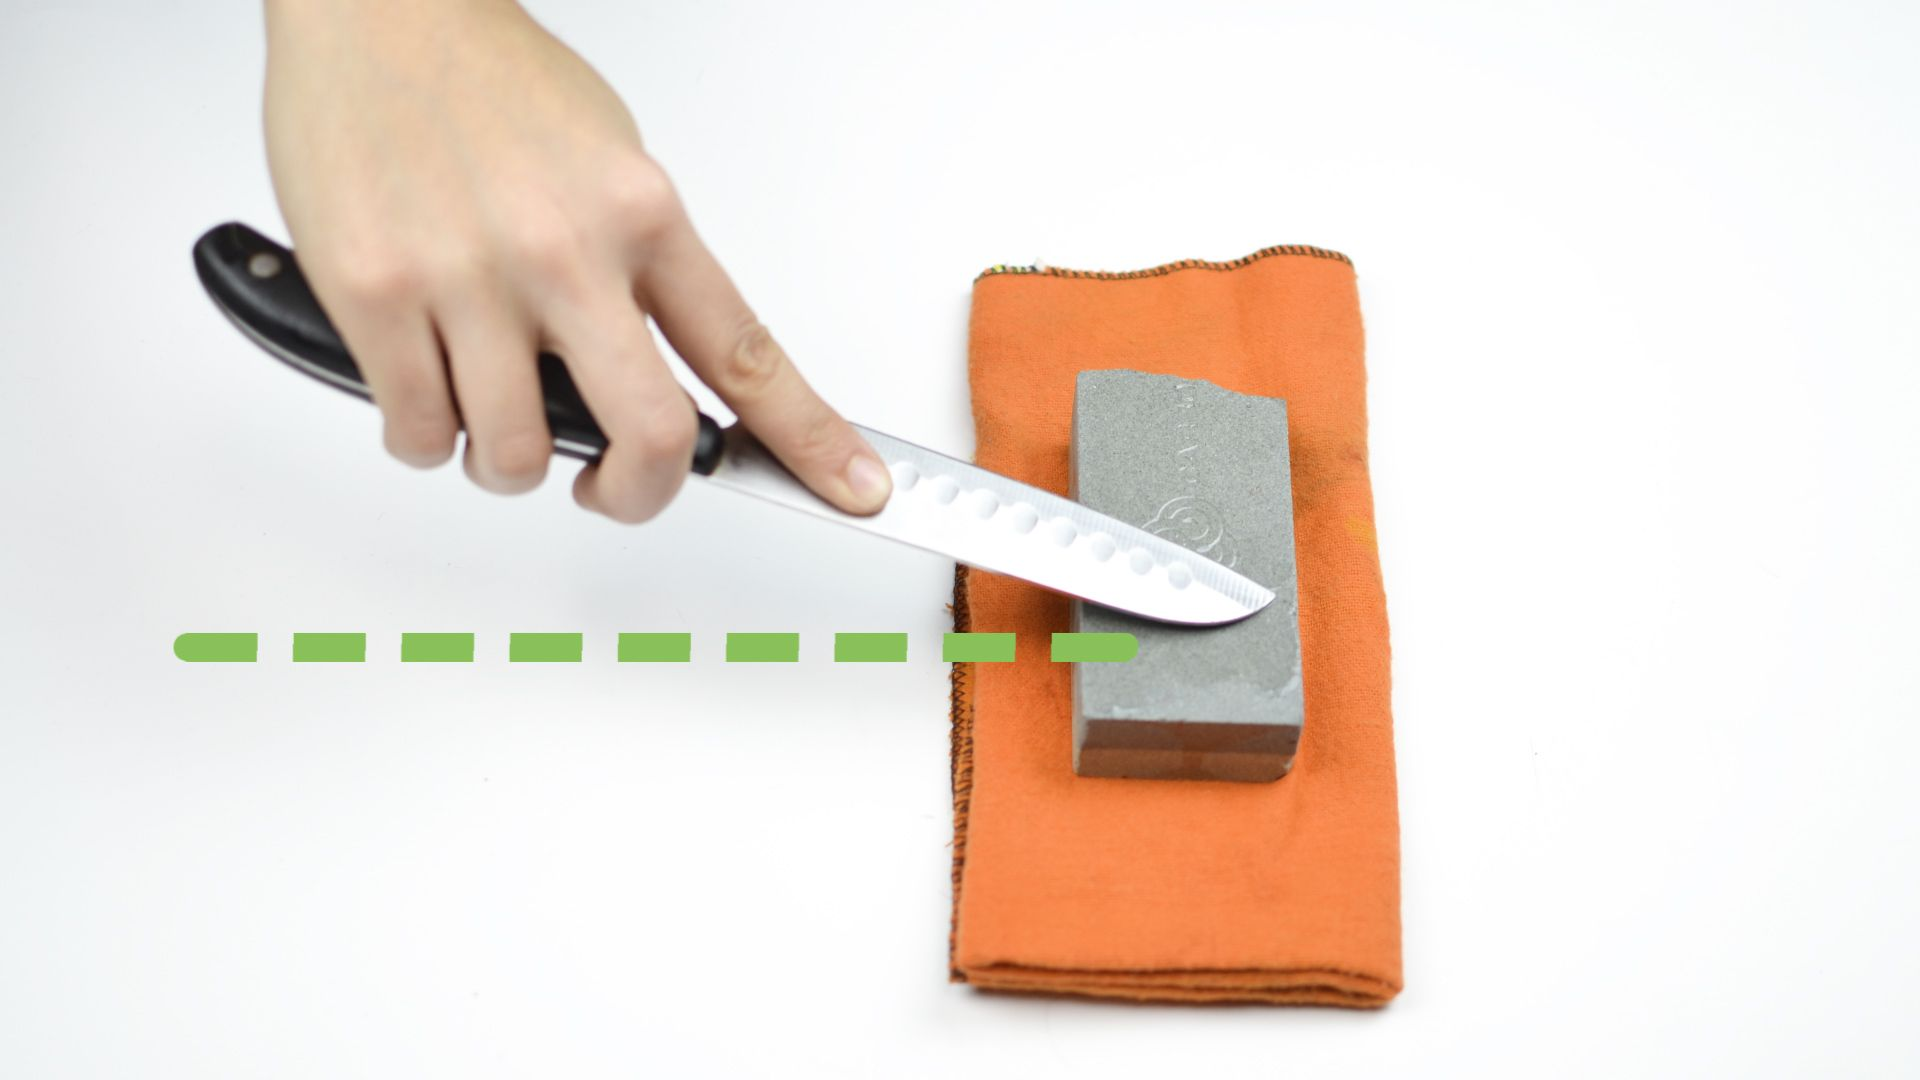 How to sharpen a knife with a stone dull knives knife